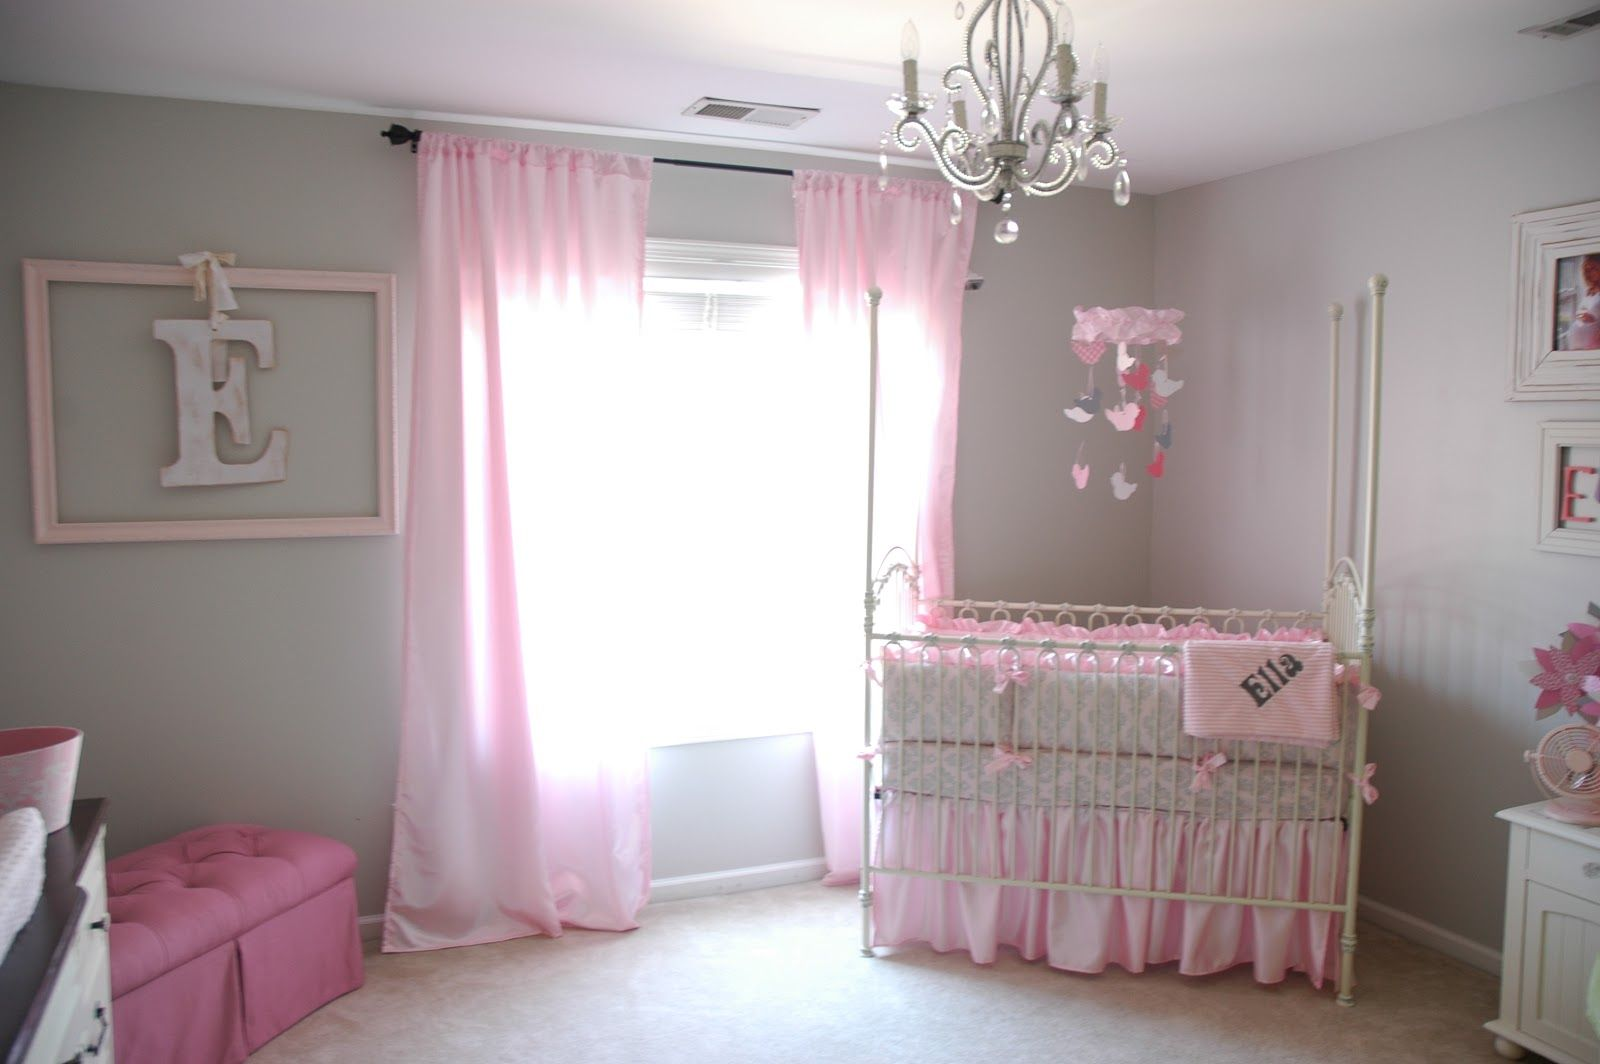 Bedroom extraordinary chrome chandeliers and pink baby bedding baby nursery pretty crystal chandelier and metal four poster crib design feat stylish pink baby room curtain baby room curtain application arubaitofo Choice Image